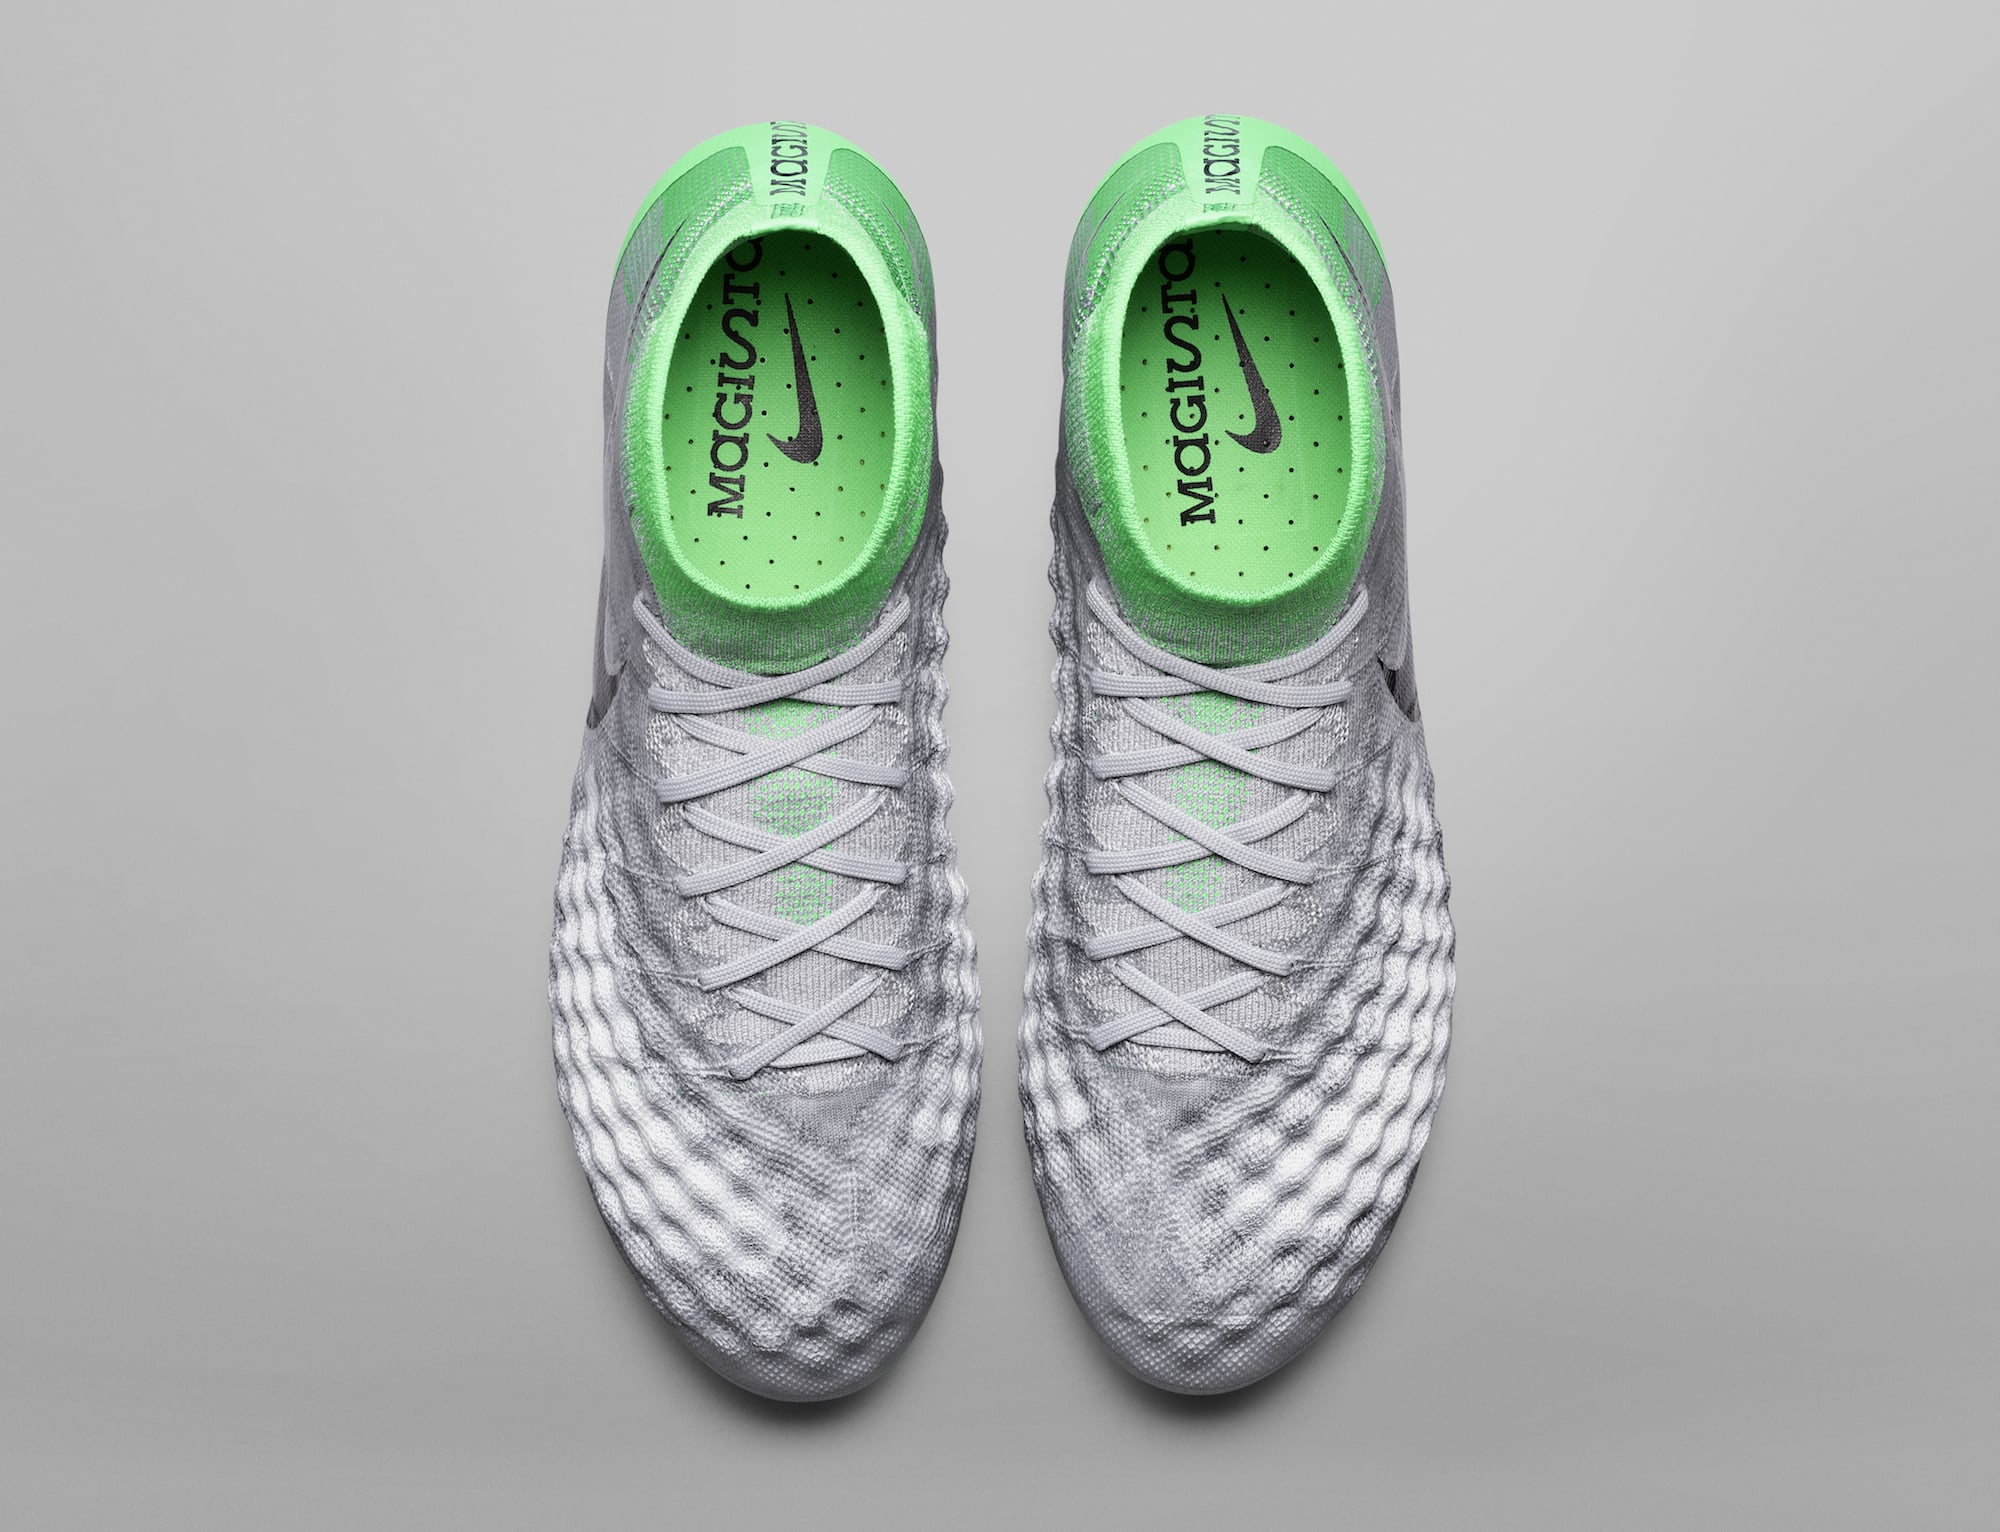 chaussures-football-Nike-Magista-Obra-2-Femmes-Women-Radiation-Flare-img2